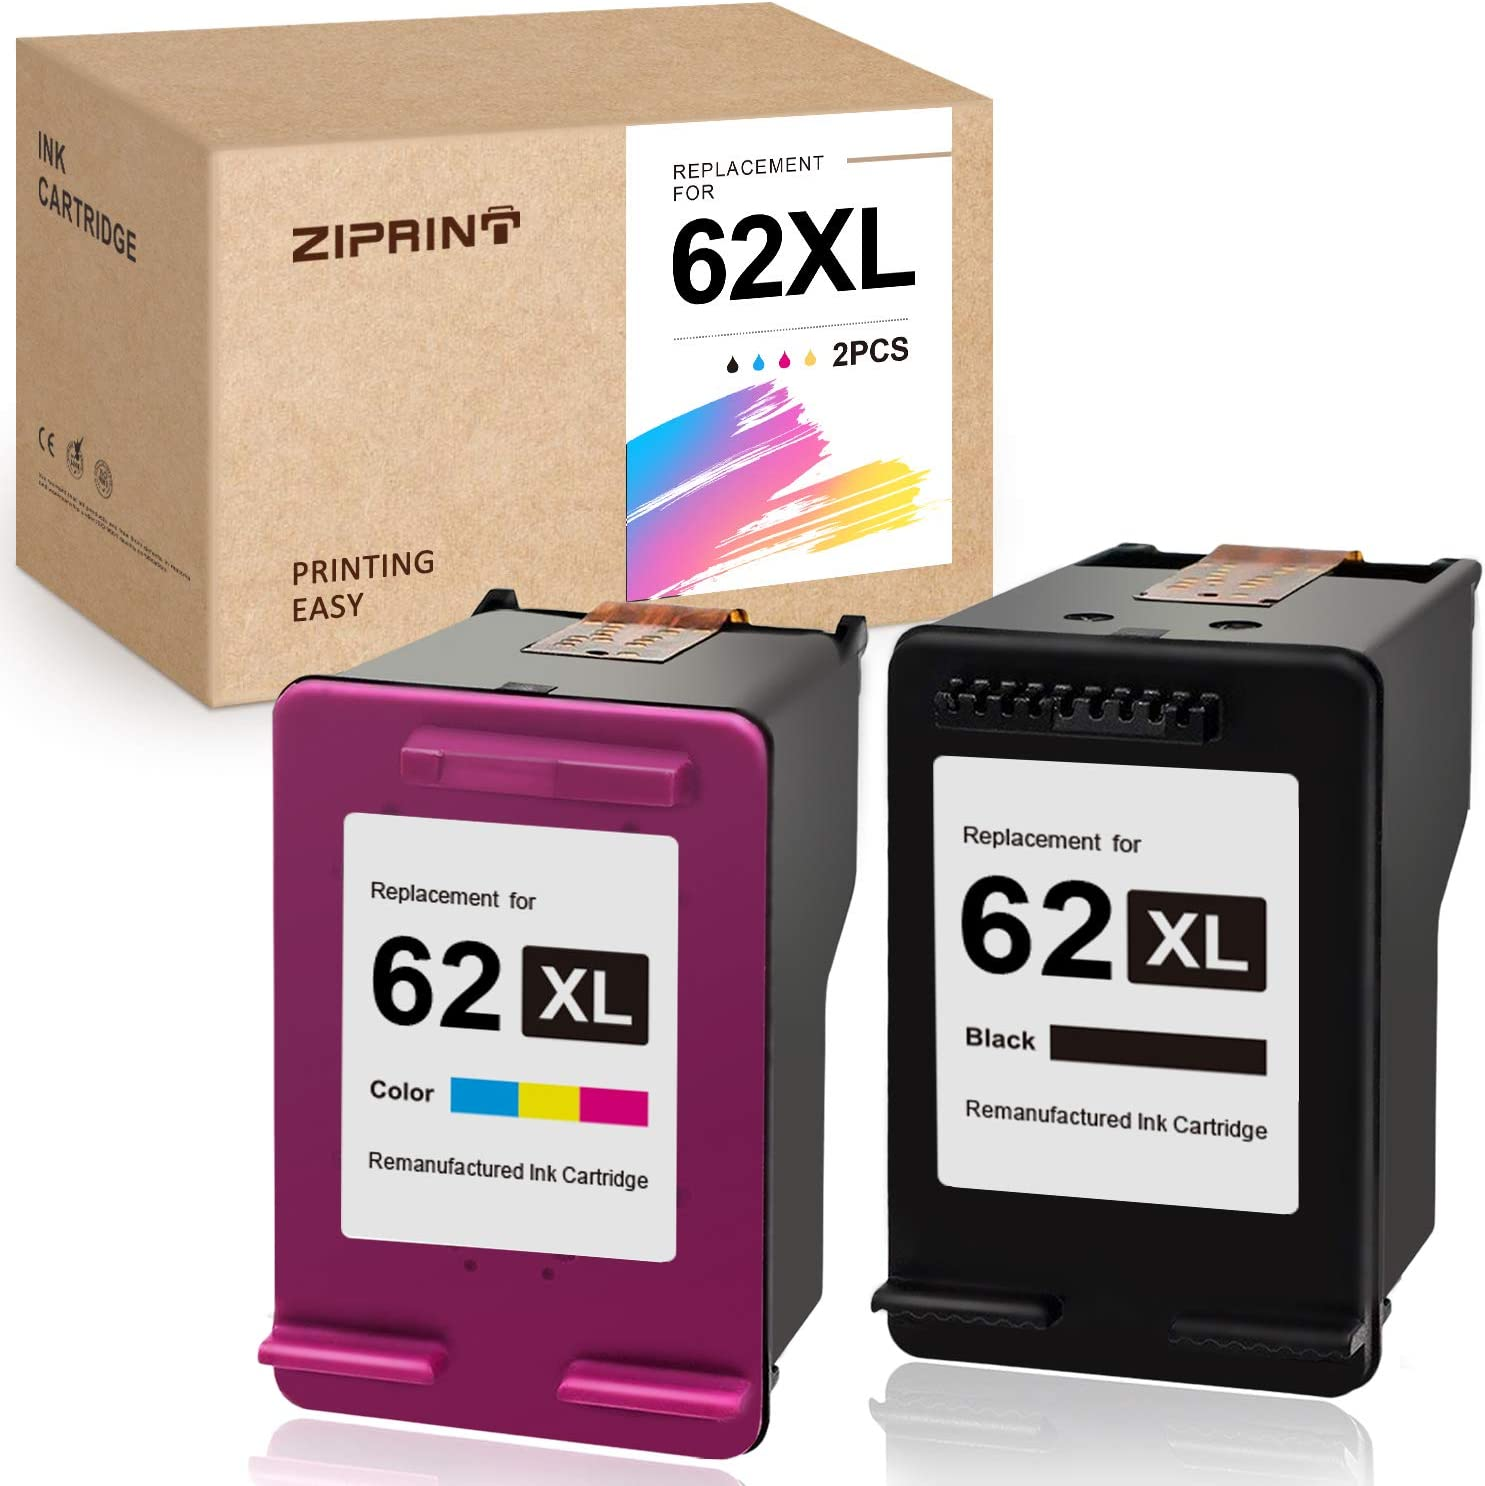 ZIPRIINT Remanufactured Ink Cartridge Replacement for HP 62XL 62 XL for OfficeJet 5740 5745 5743 200 250 Envy 7640 7645 5660 5540 5642 5643 5665 5663 5640 (2-Pack)